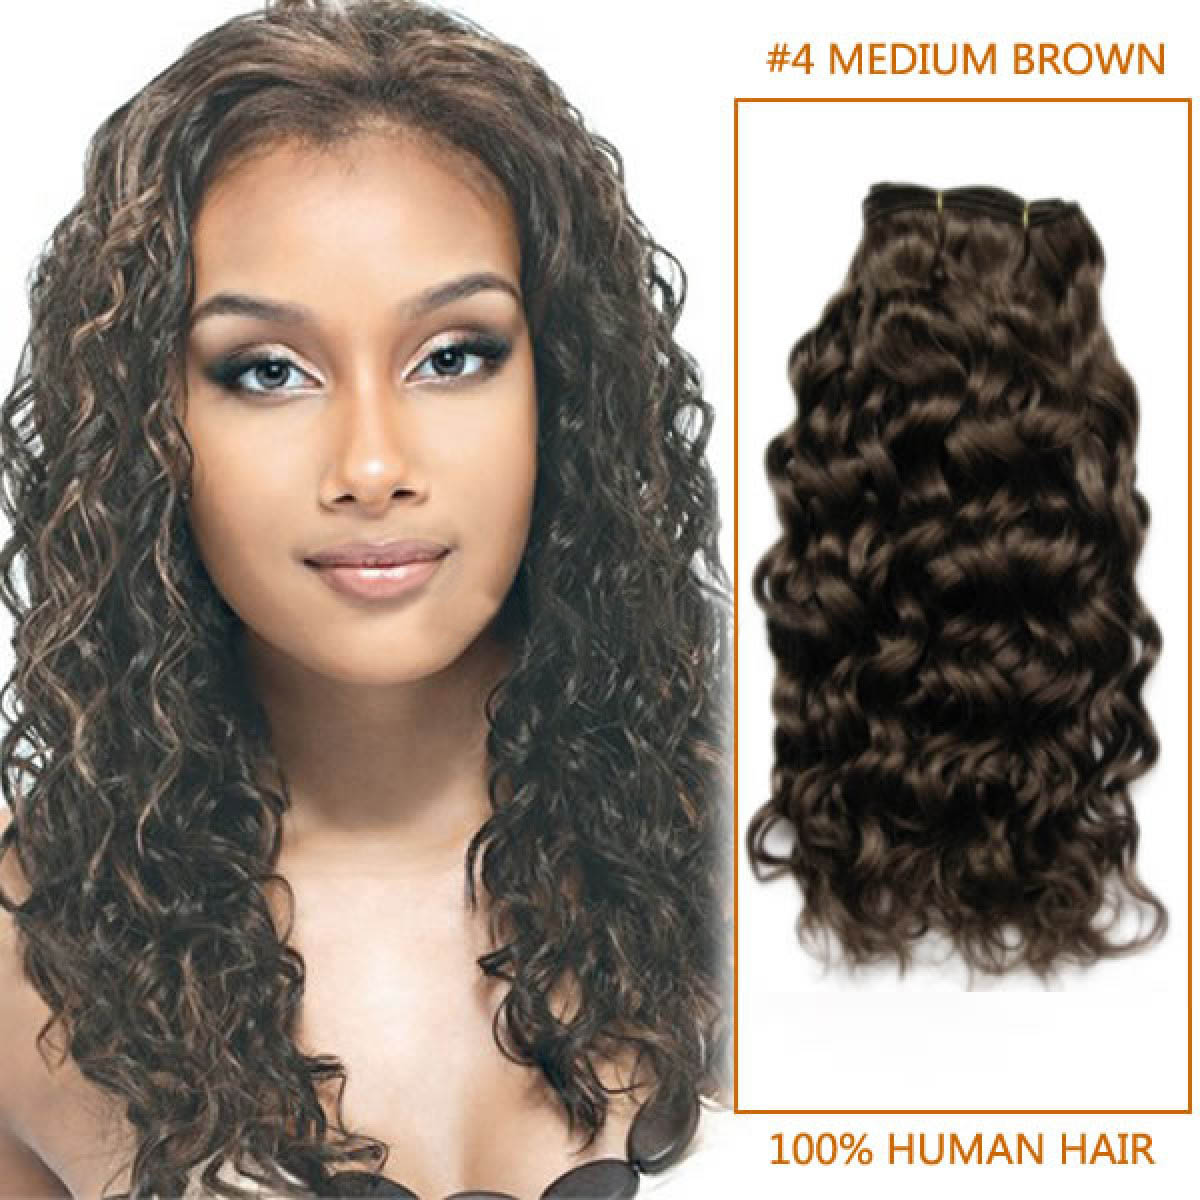 Inch 4 medium brown curly indian remy hair wefts 14 inch 4 medium brown curly indian remy hair wefts pmusecretfo Image collections